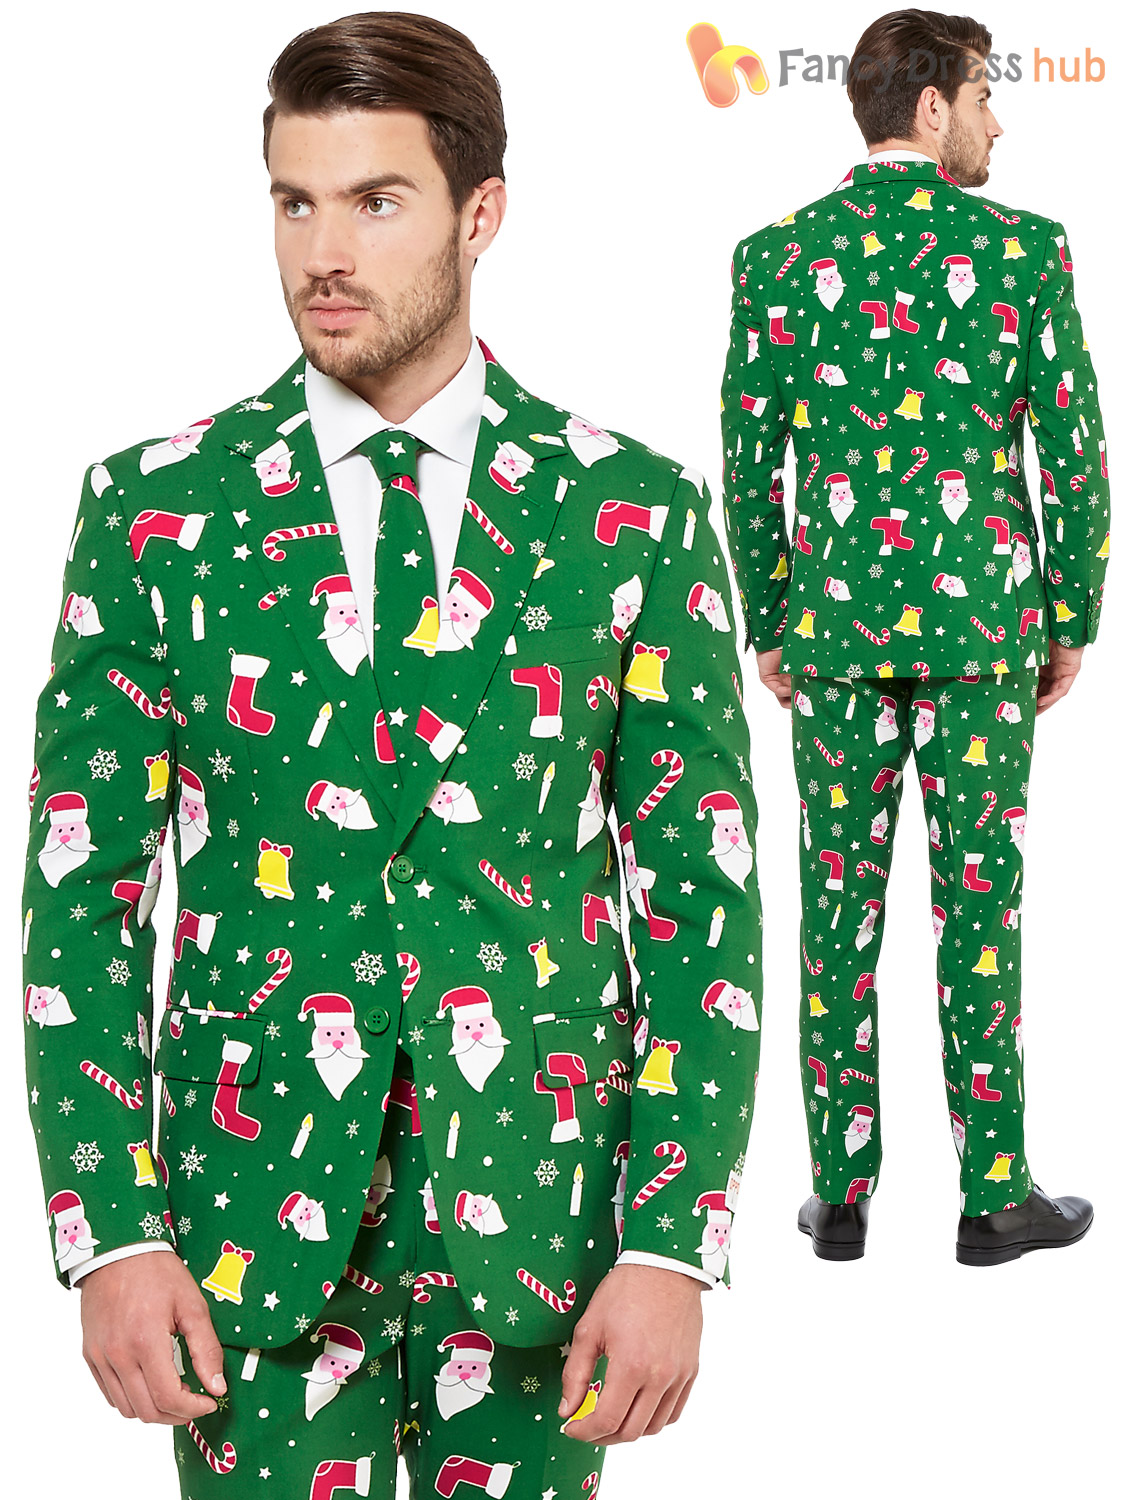 Mens christmas opposuit adults xmas party oppo suit